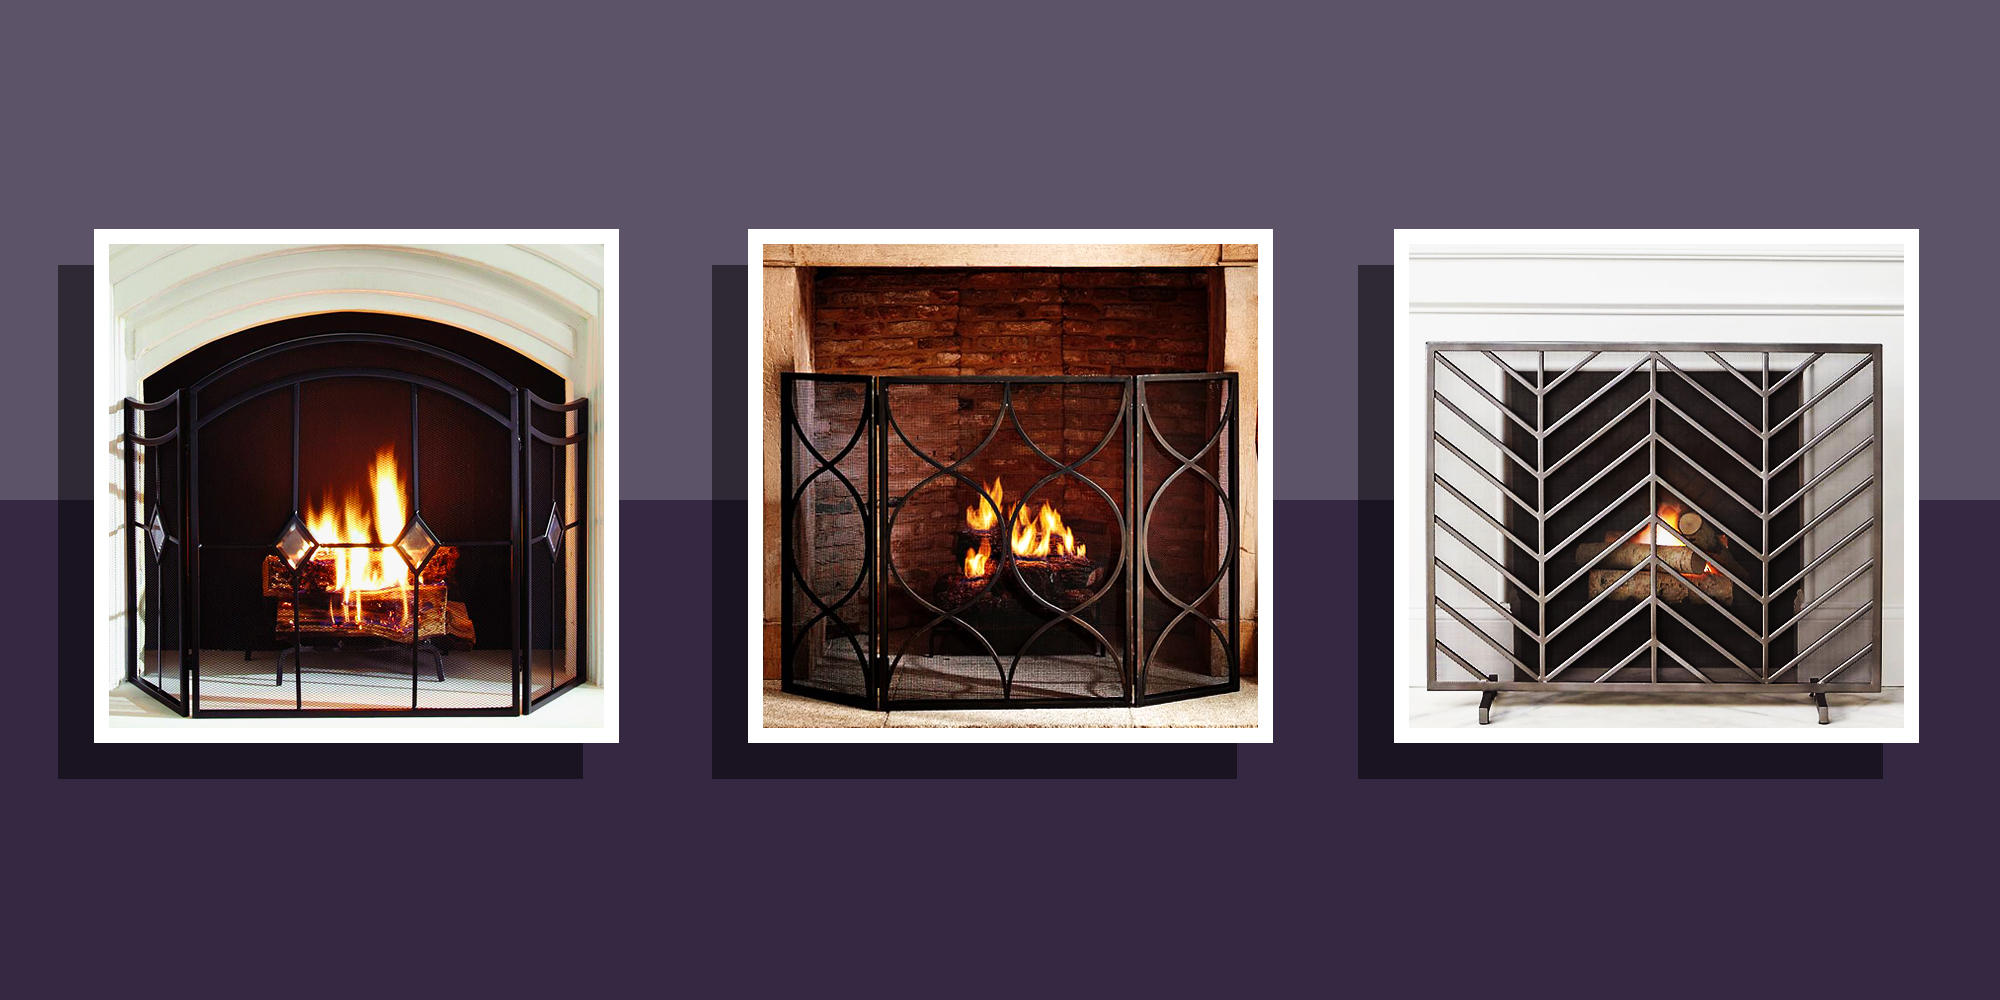 10 best fireplace screens for winter 2018 decorative Decorative fireplace covers